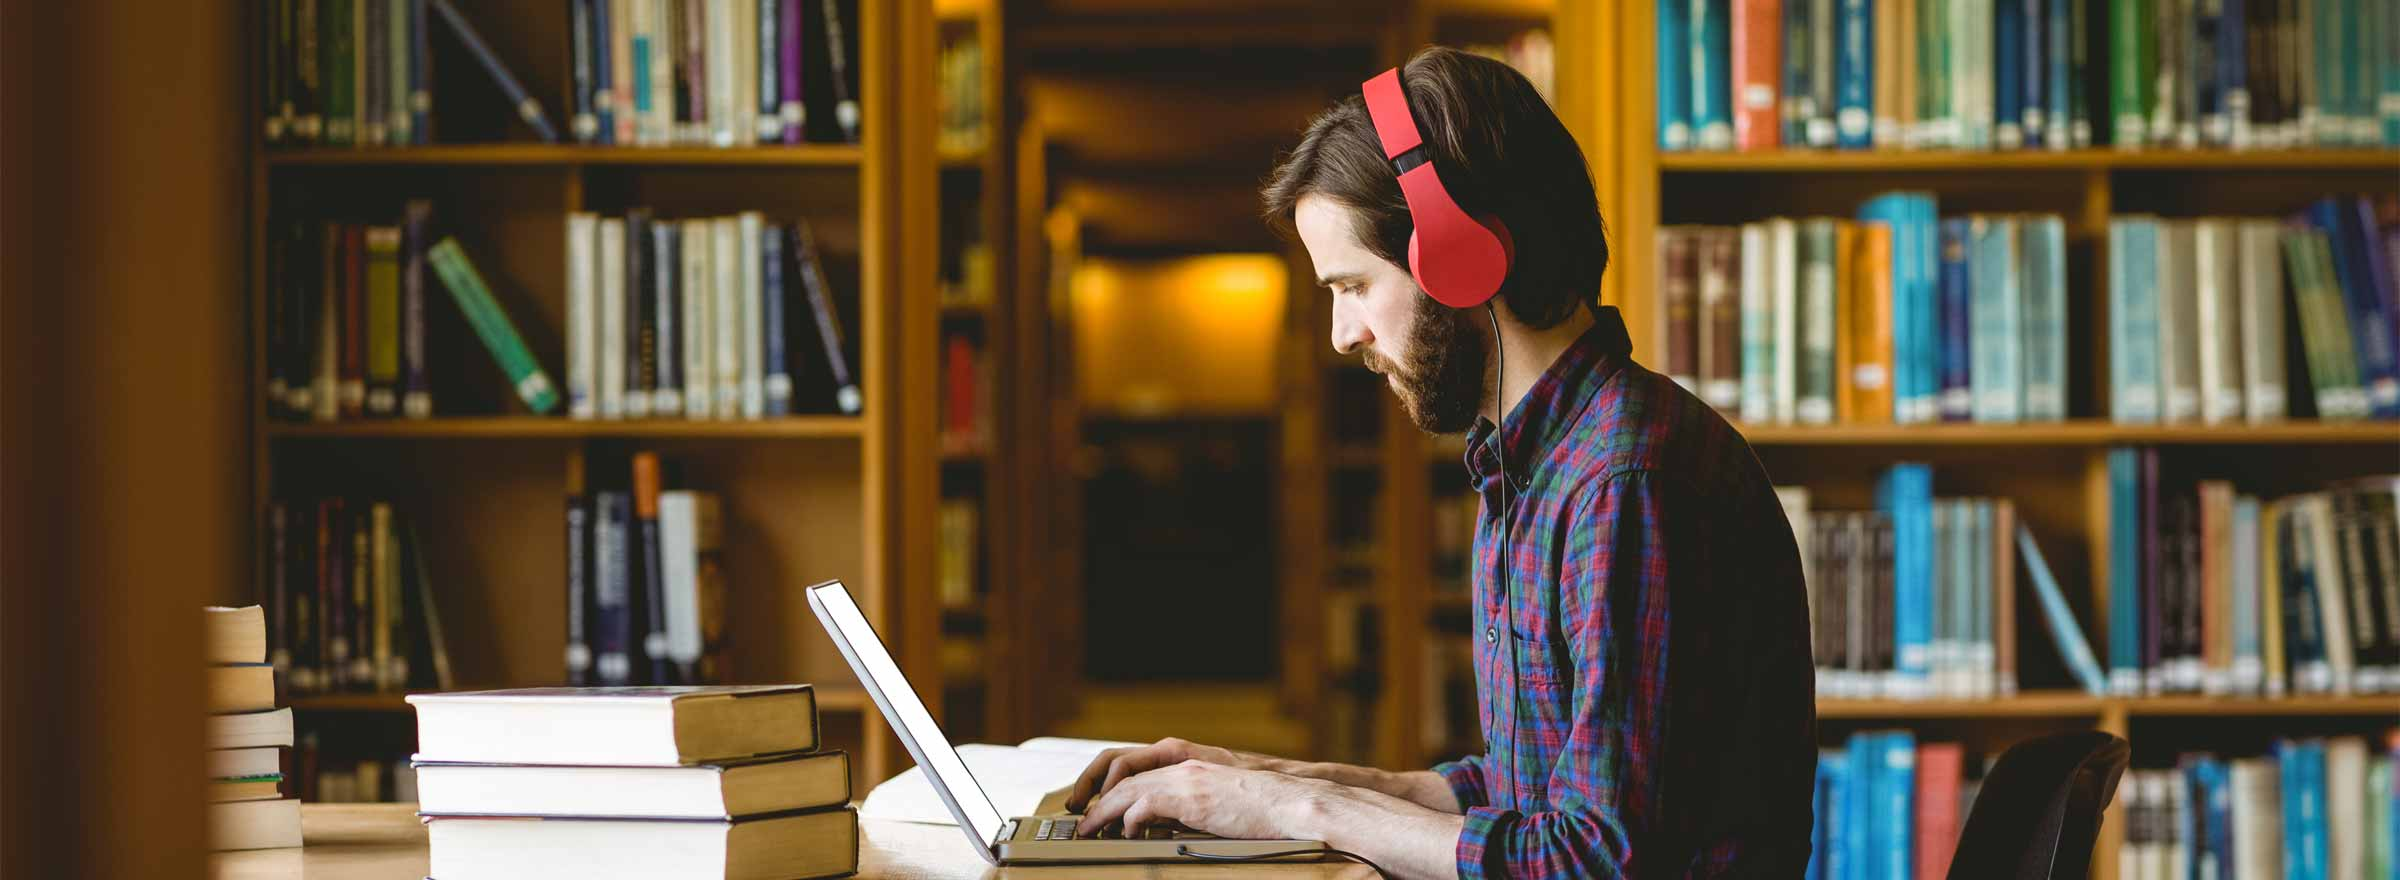 man with headphones working on a computer in a library